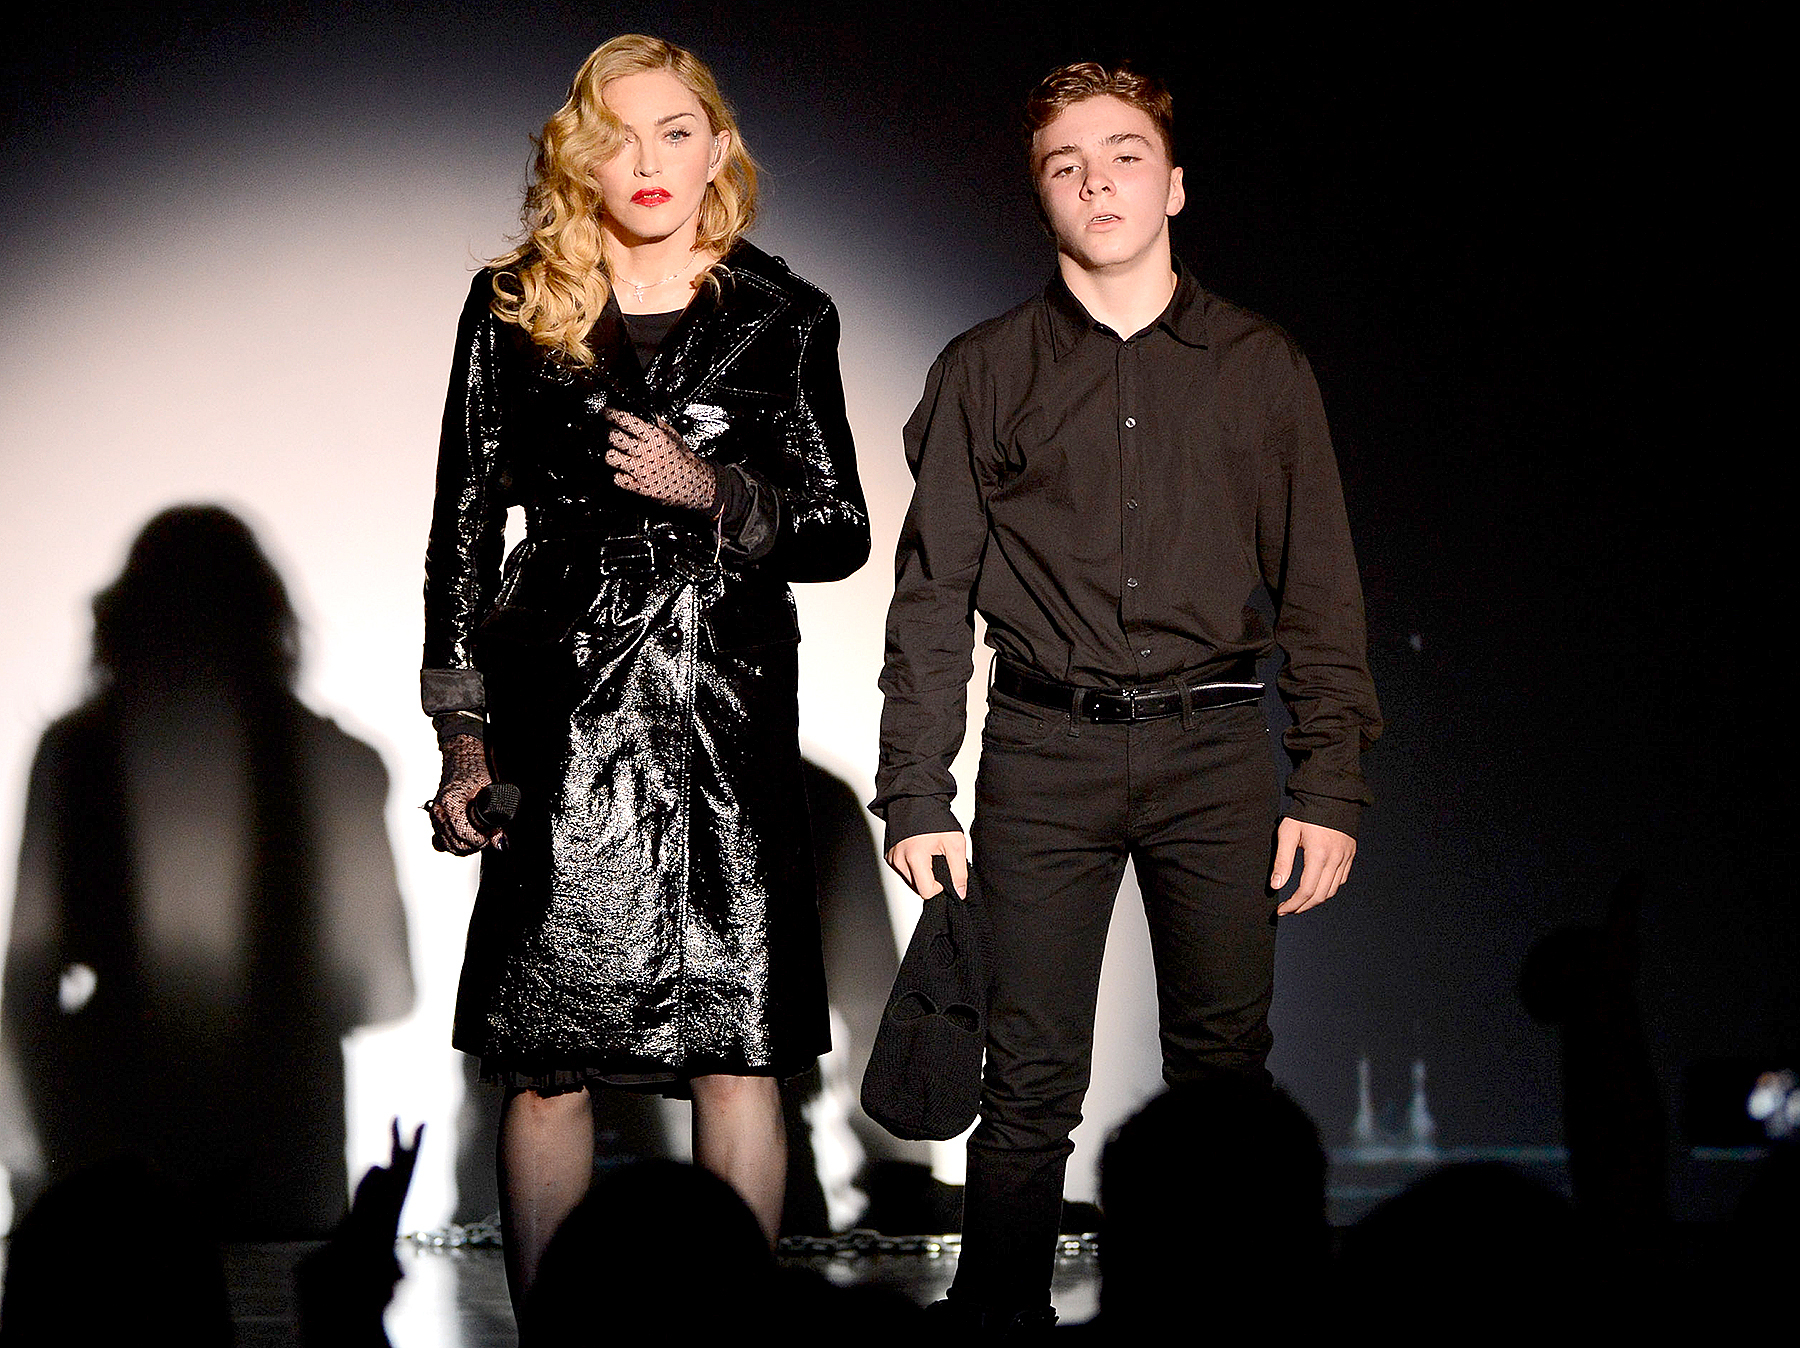 Madonna and Rocco Ritchie perform during Madonna and Steven Klein secretprojectrevolution at the Gagosian Gallery on September 24, 2013 in New York City.